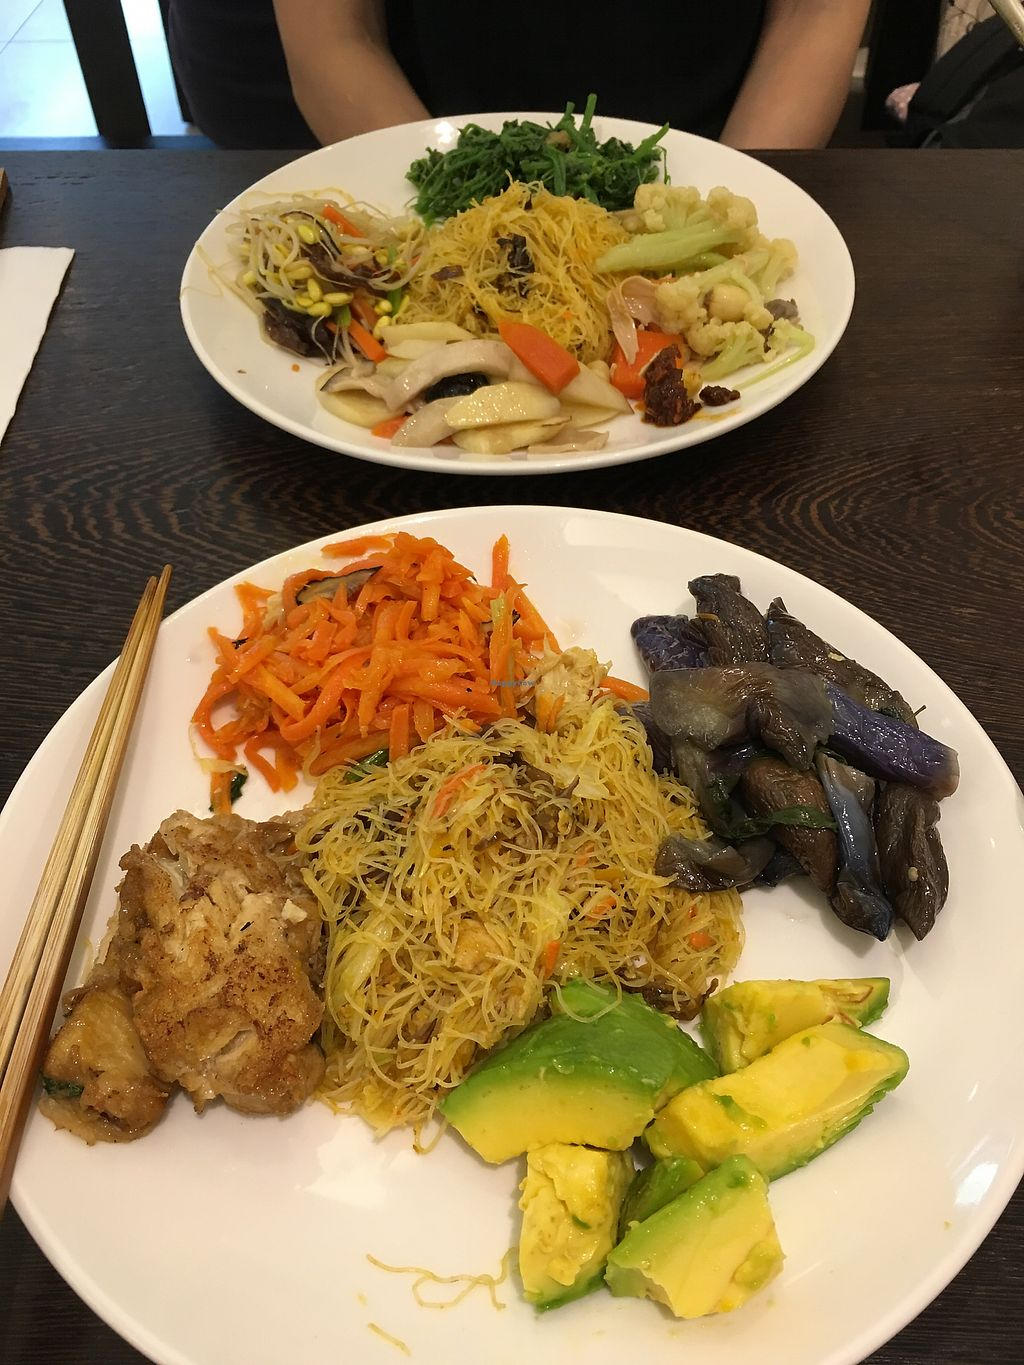 """Photo of Huo Yue Meal + Juice  by <a href=""""/members/profile/AnnLiu"""">AnnLiu</a> <br/>Taste is good but a little oily (NT180 w soup/person) <br/> September 8, 2017  - <a href='/contact/abuse/image/81516/301945'>Report</a>"""